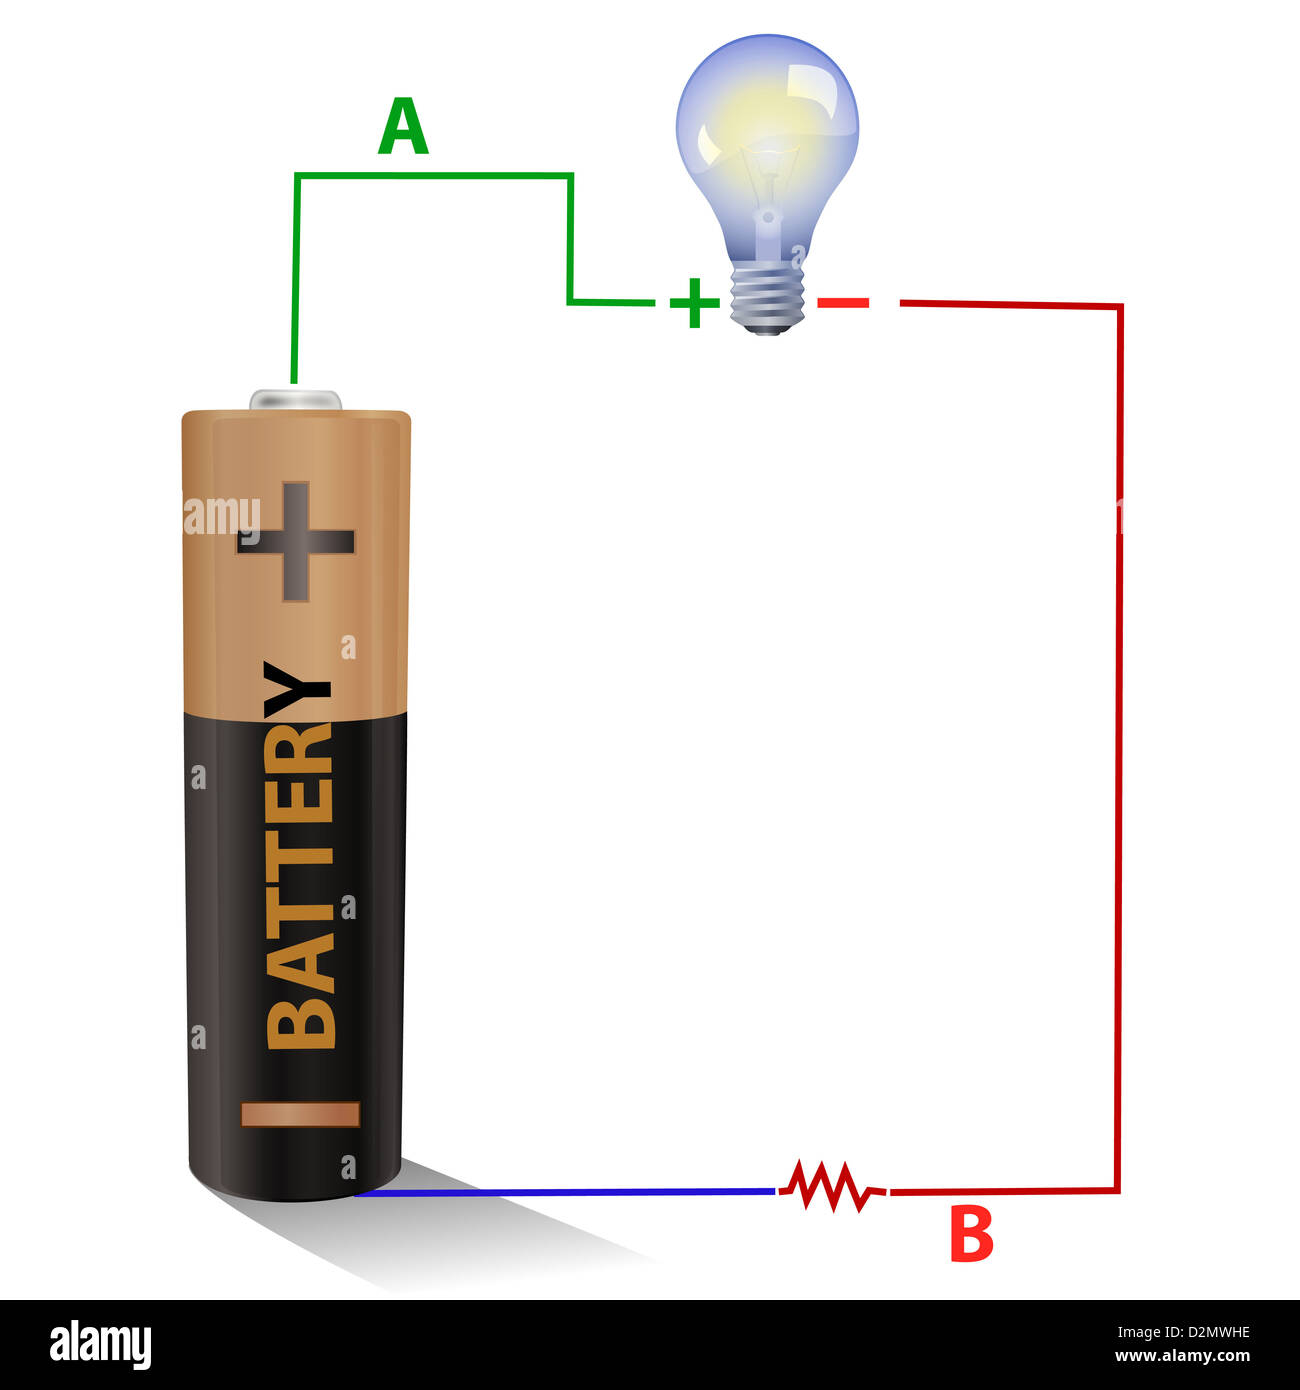 battery connected to a light bulb - stock image